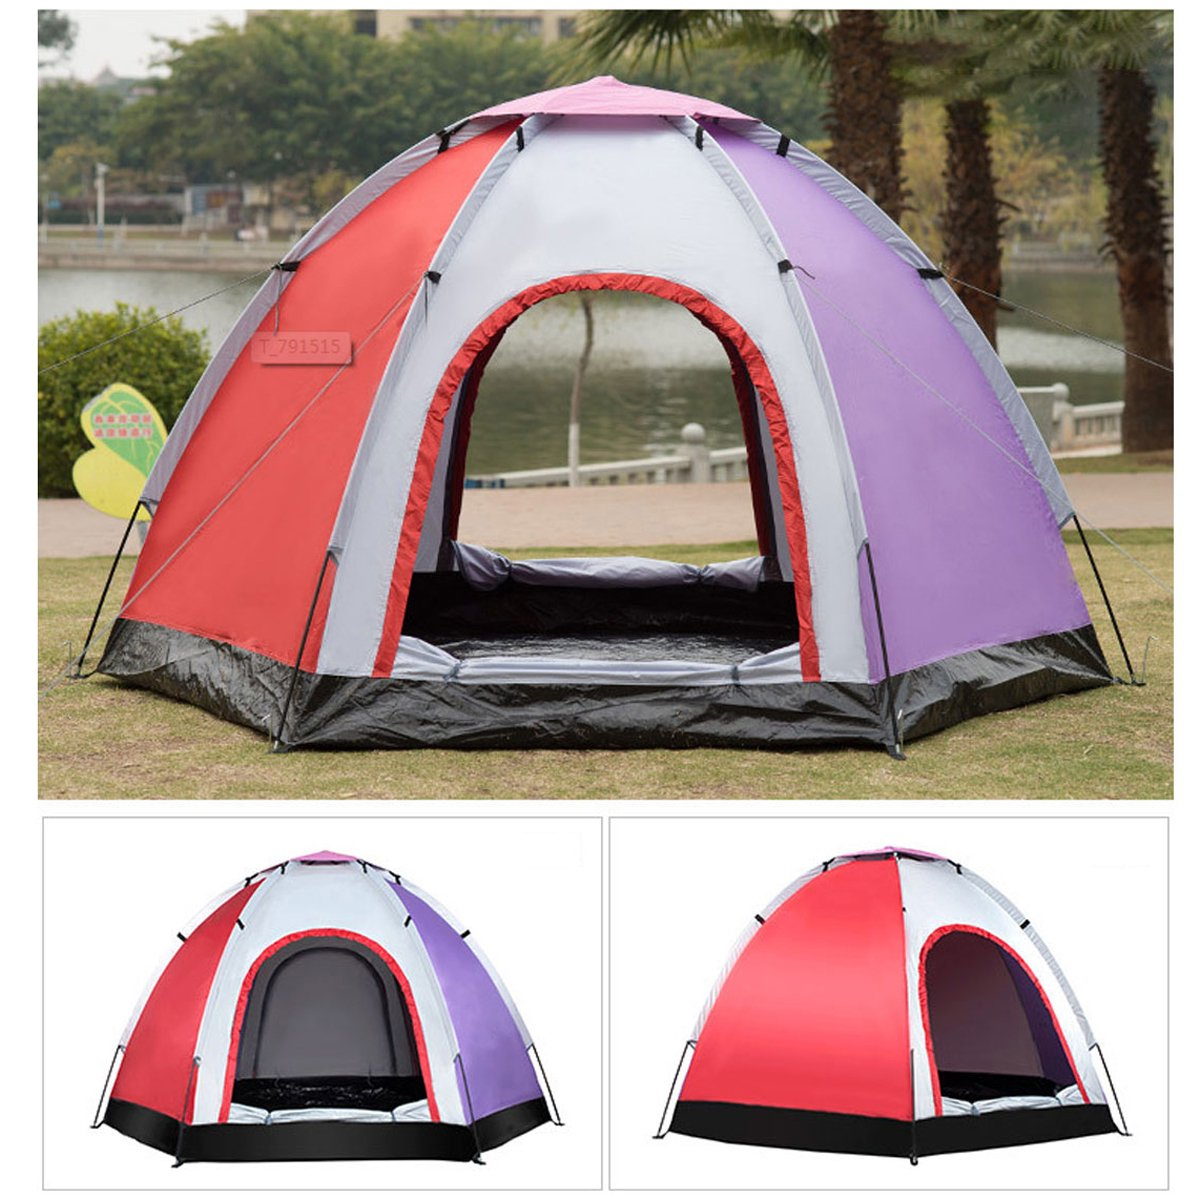 wholesale dealer 3cb54 49d0f 8x8 foot 4-Person Huge Camping Tent Family Instant Tent Cot Double-layer  Waterproof For Outdoor Hiking Fishing Beach outdoortent Camping Traveling  ...